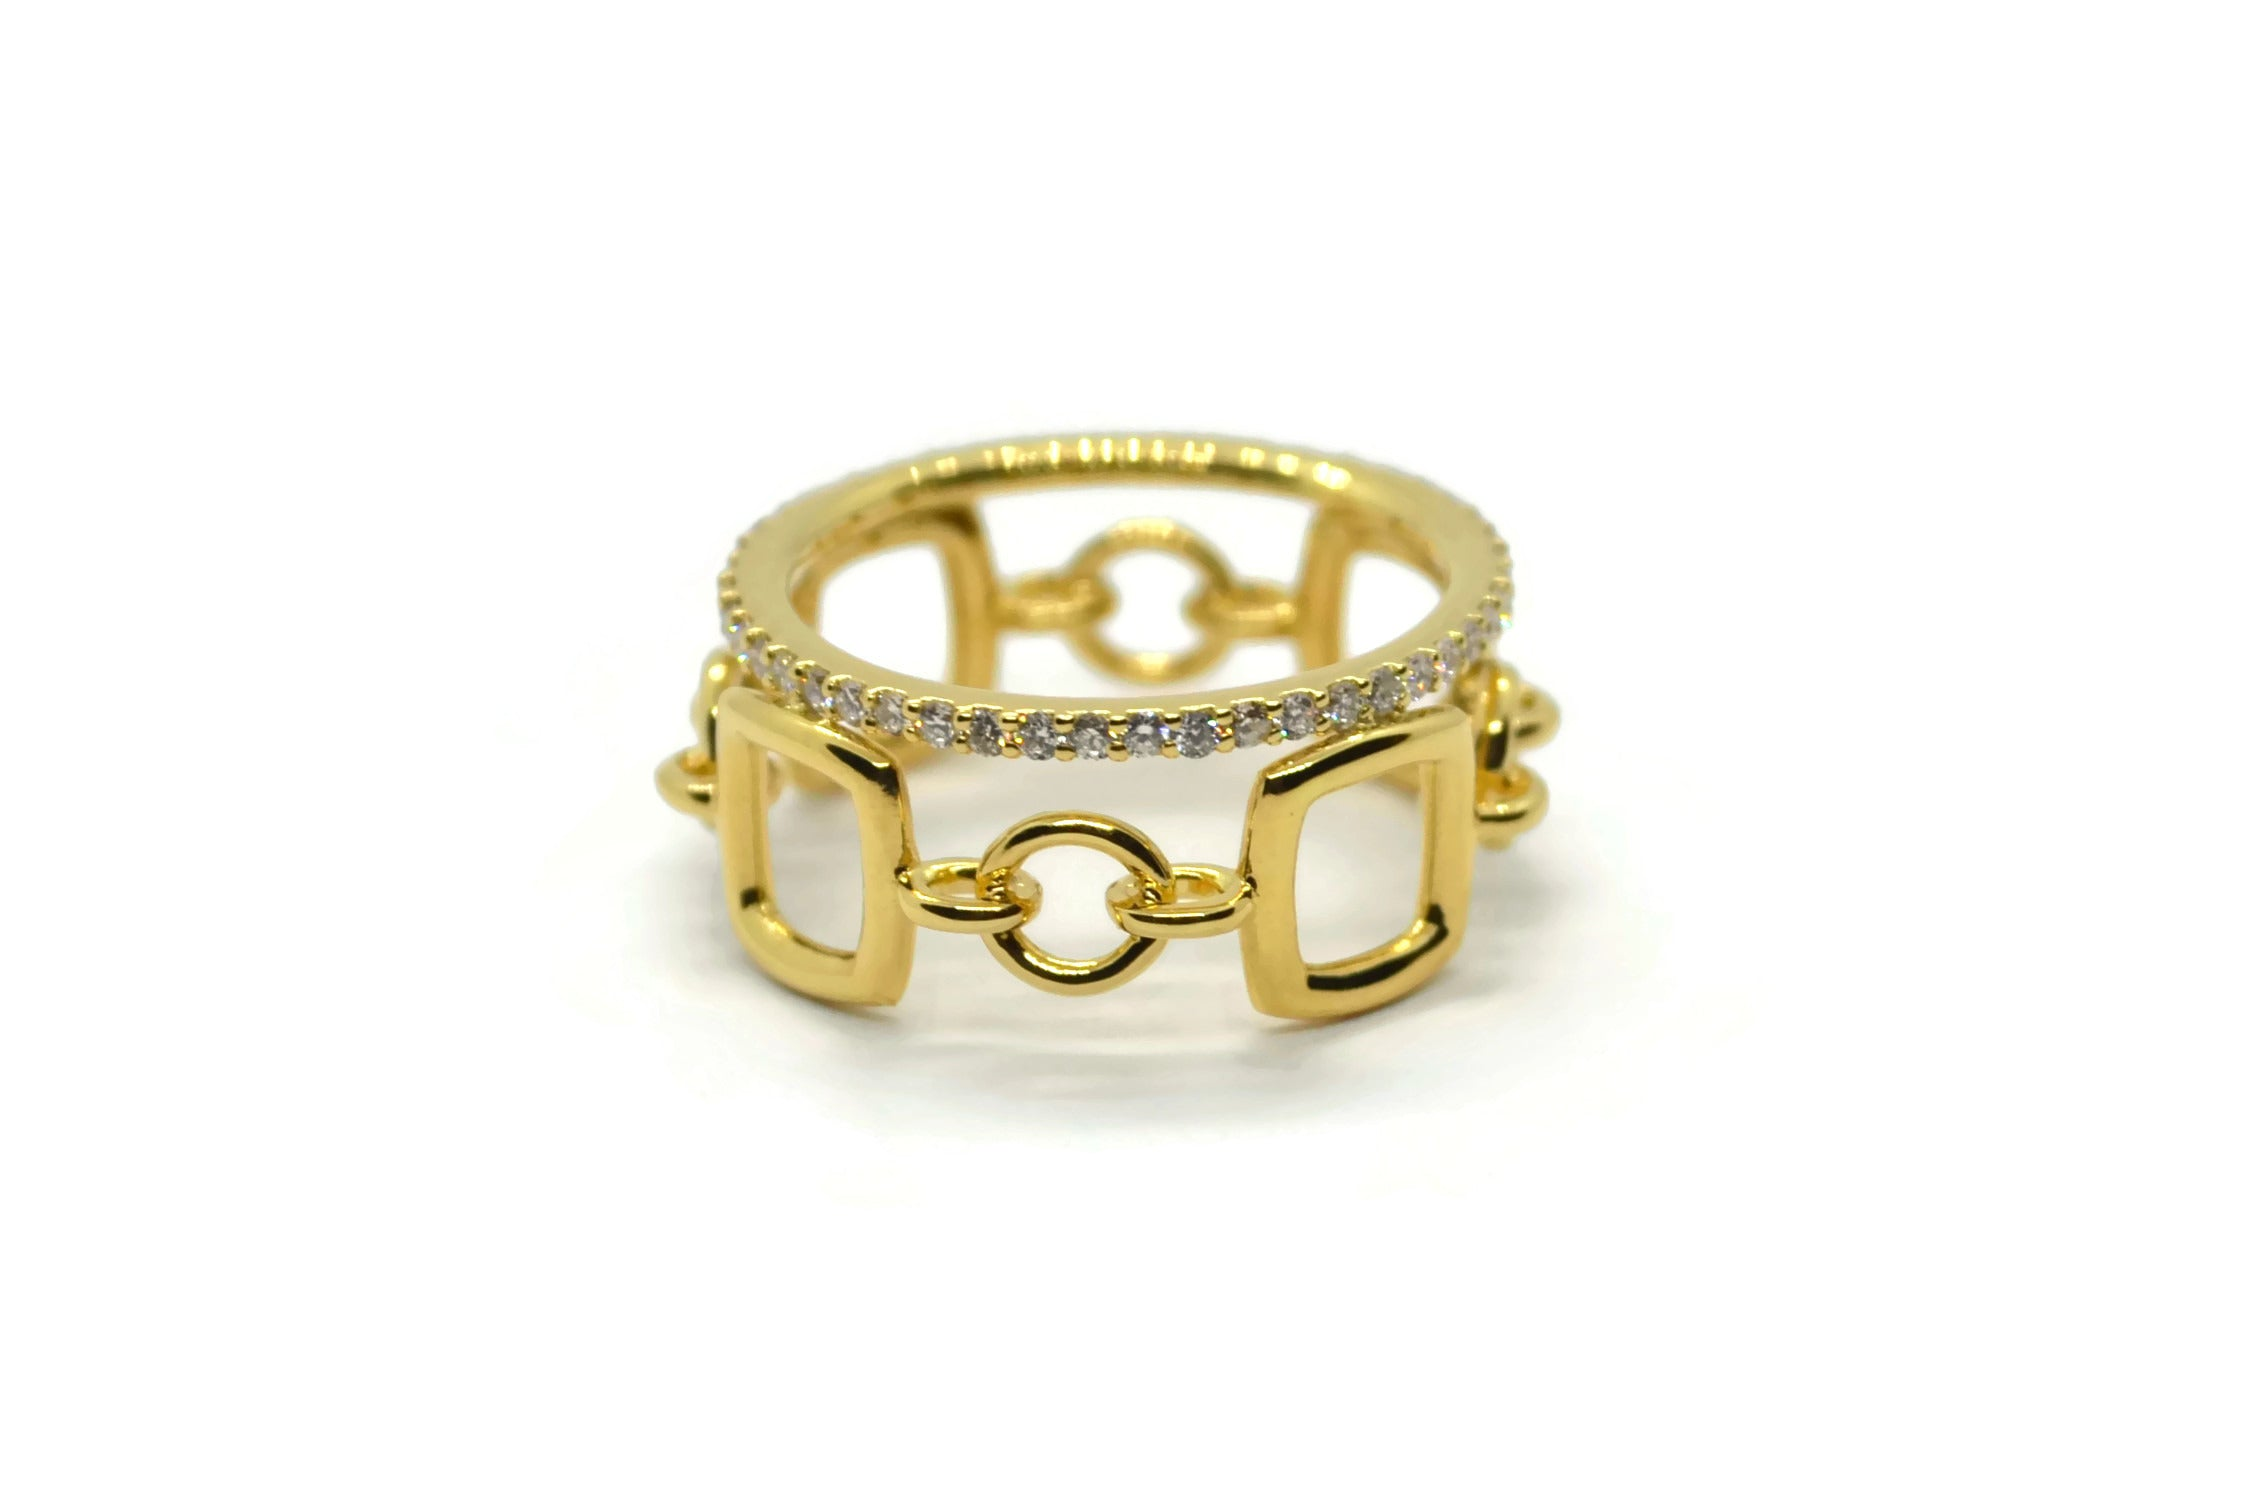 Gaia Oro - Band Ring with Diamonds, 18k Yellow Gold - A & Furst